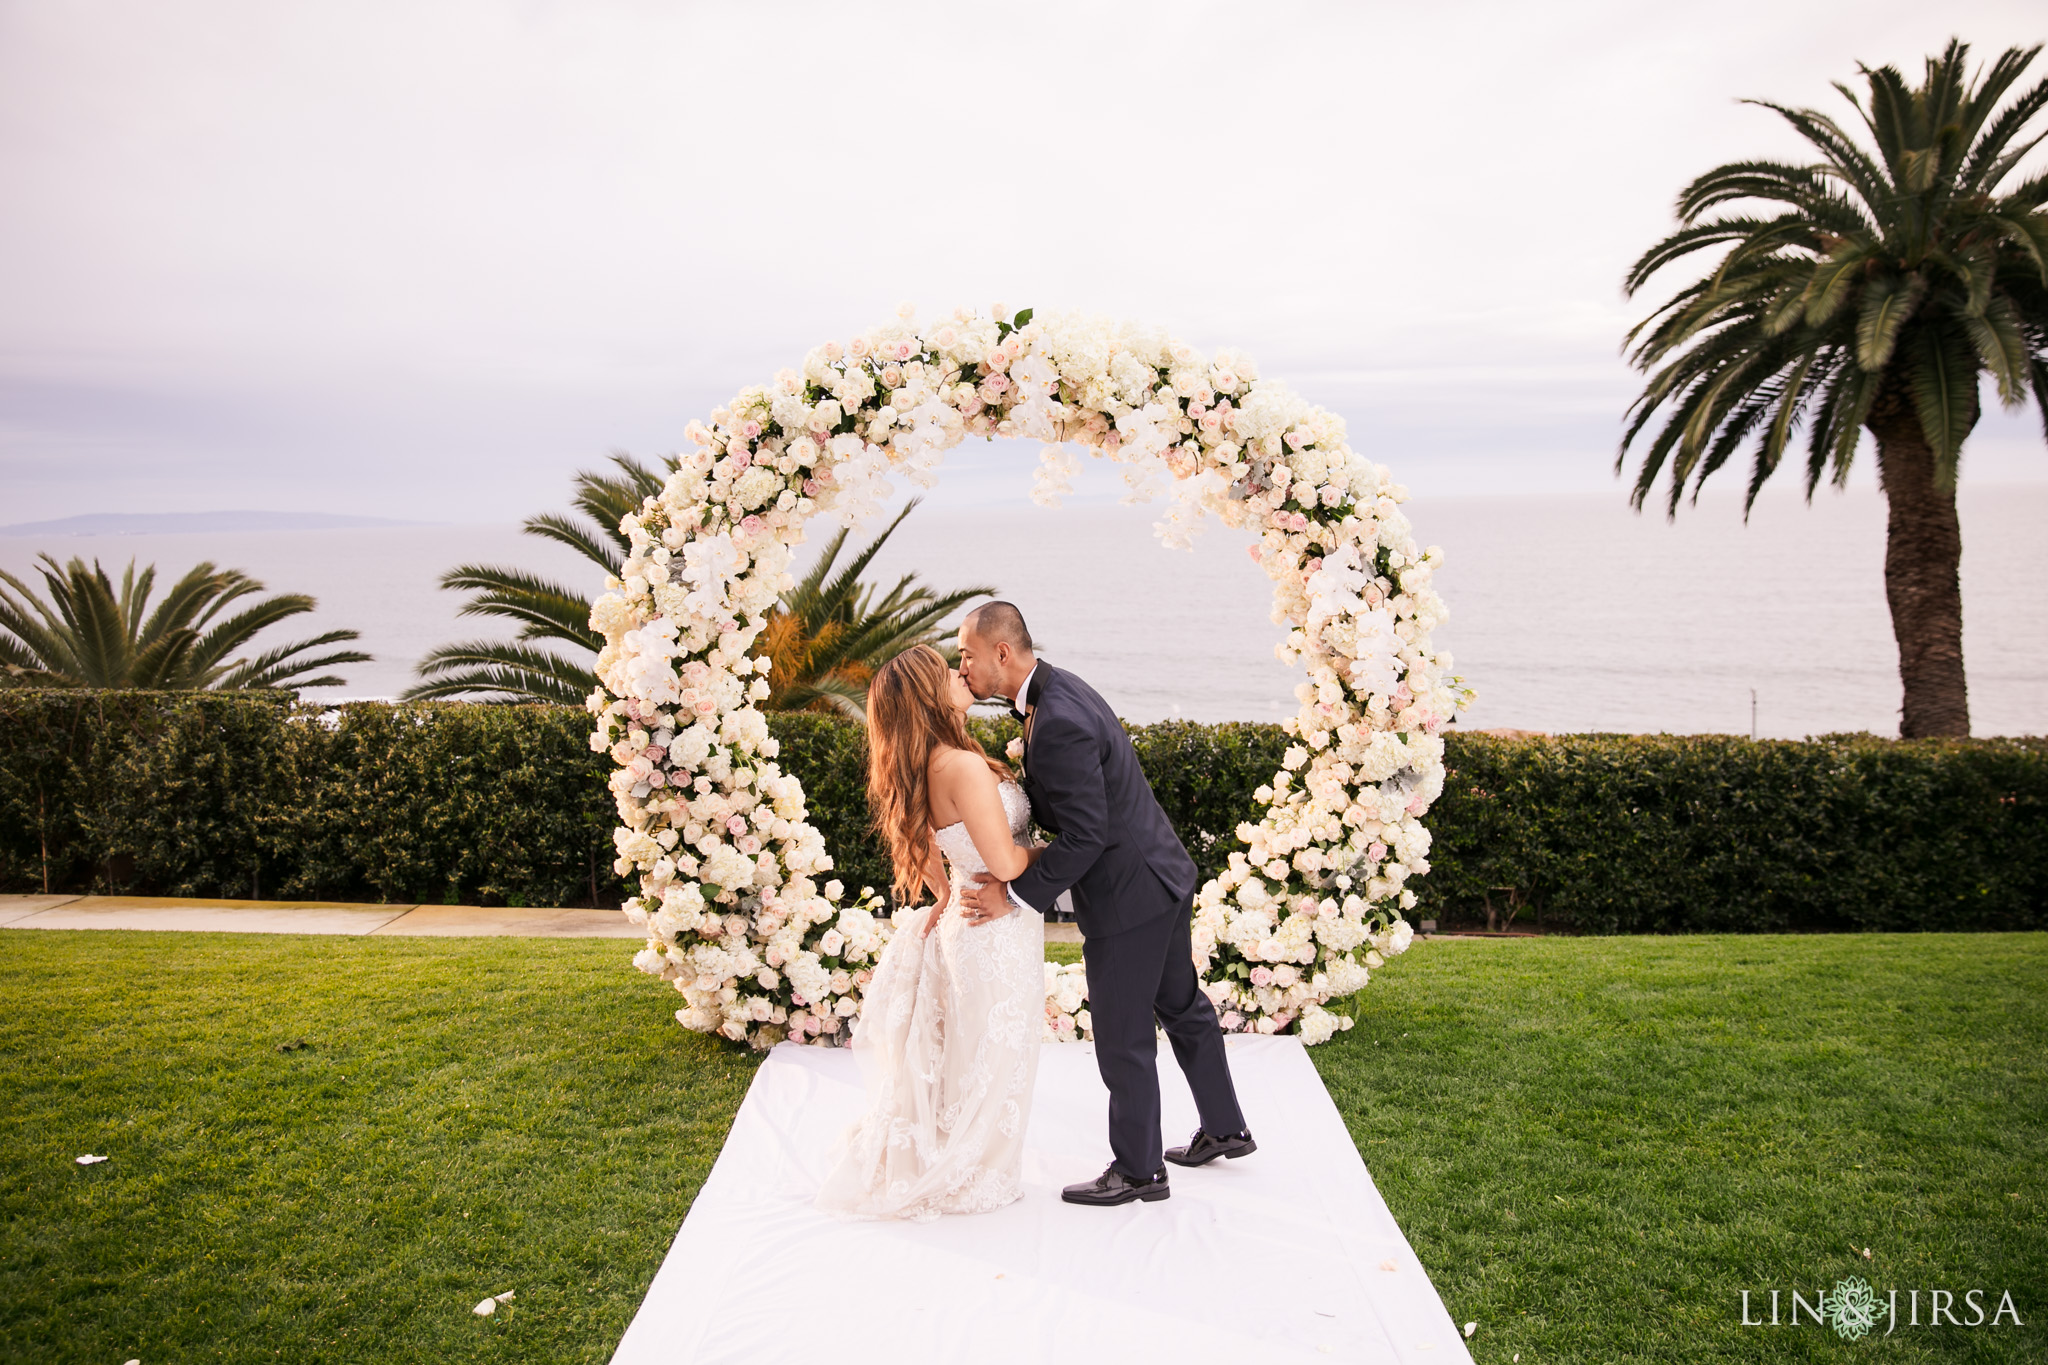 16-Bel-Air-Bay-Club-Pacific-Palisades-Wedding-Photography.jpg